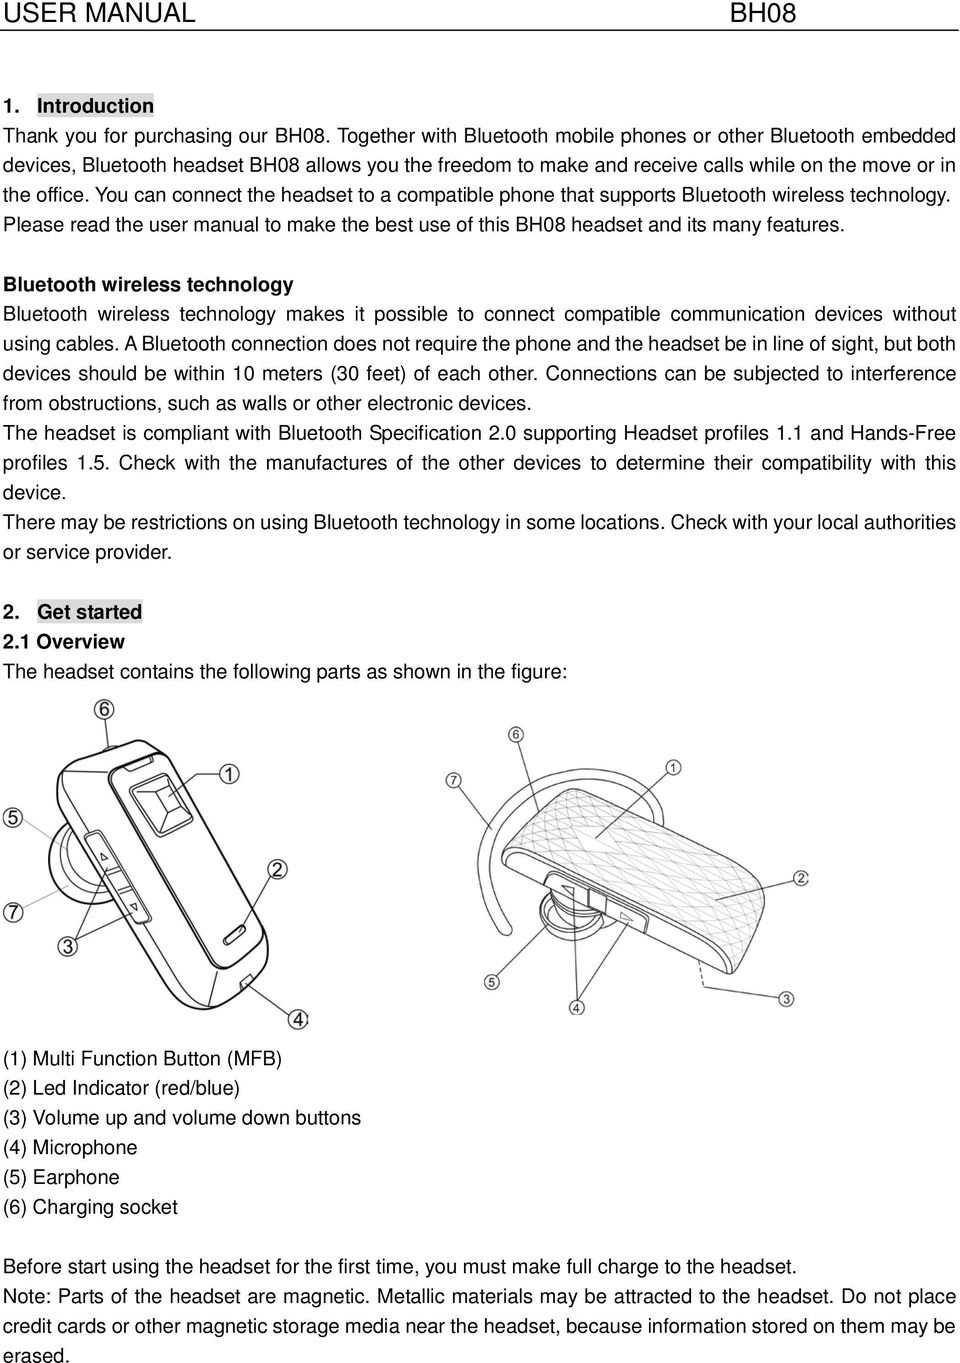 You can connect the headset to a compatible phone that supports Bluetooth wireless technology. Please read the user manual to make the best use of this headset and its many features.